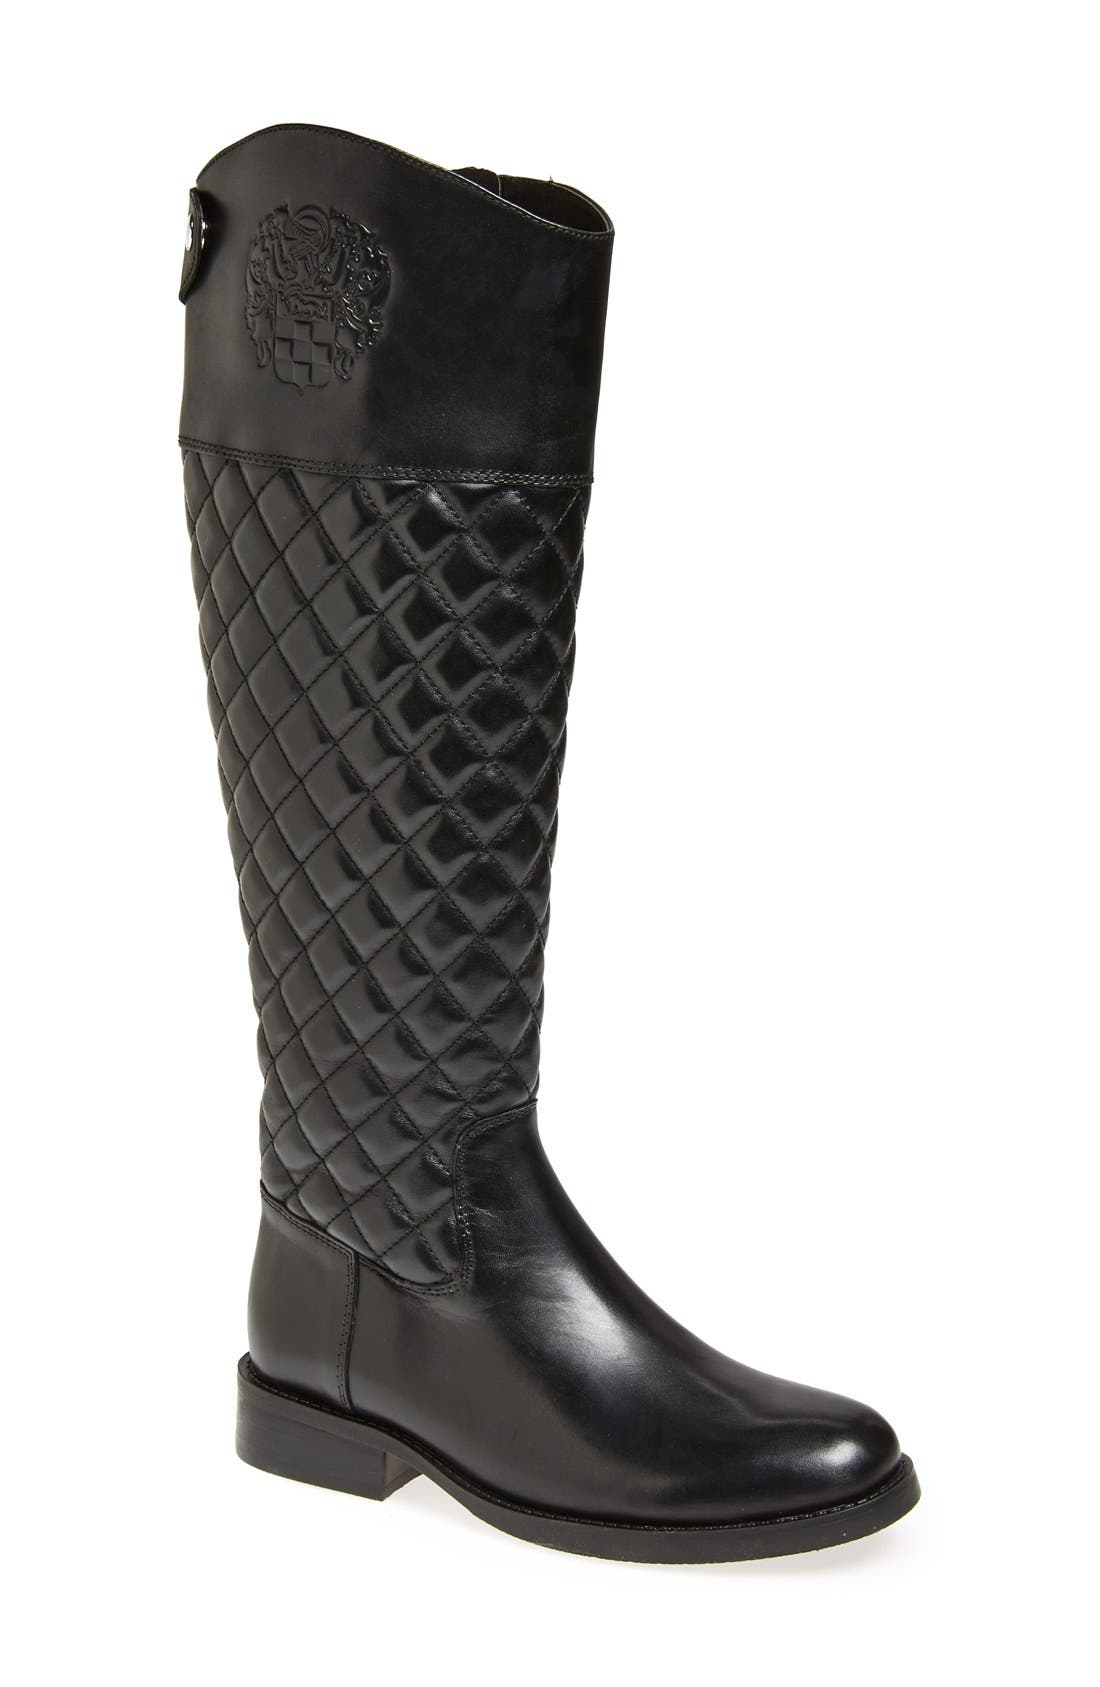 Alternate Image 1 Selected - Vince Camuto 'Faya' Boot (Women) (Wide Calf)